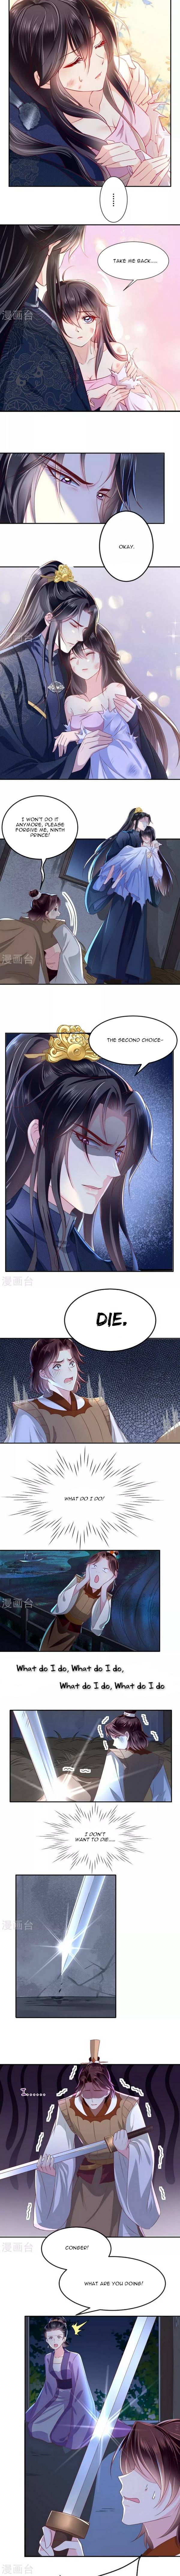 Do Not Mess With The Stupid Concubine - chapter 78 - #2